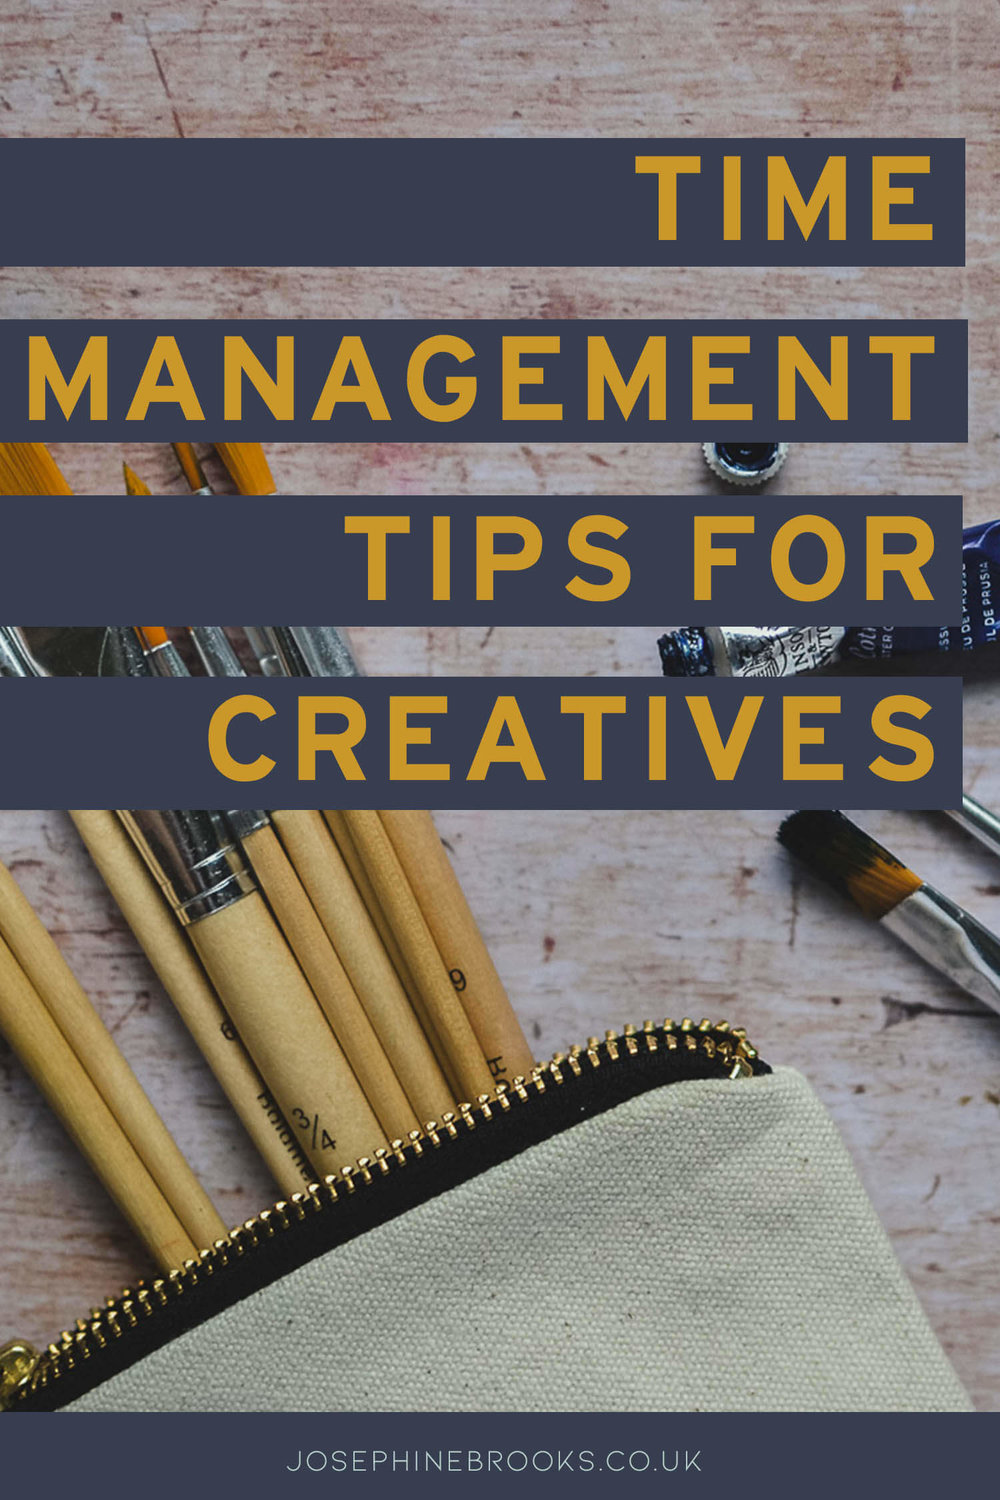 Time management tips for creatives, Productivity tips for creative business, Maker business tips, How to stop procrastinating, Working from home tips, Daily routine advice, Routine for makers, Time management for designers